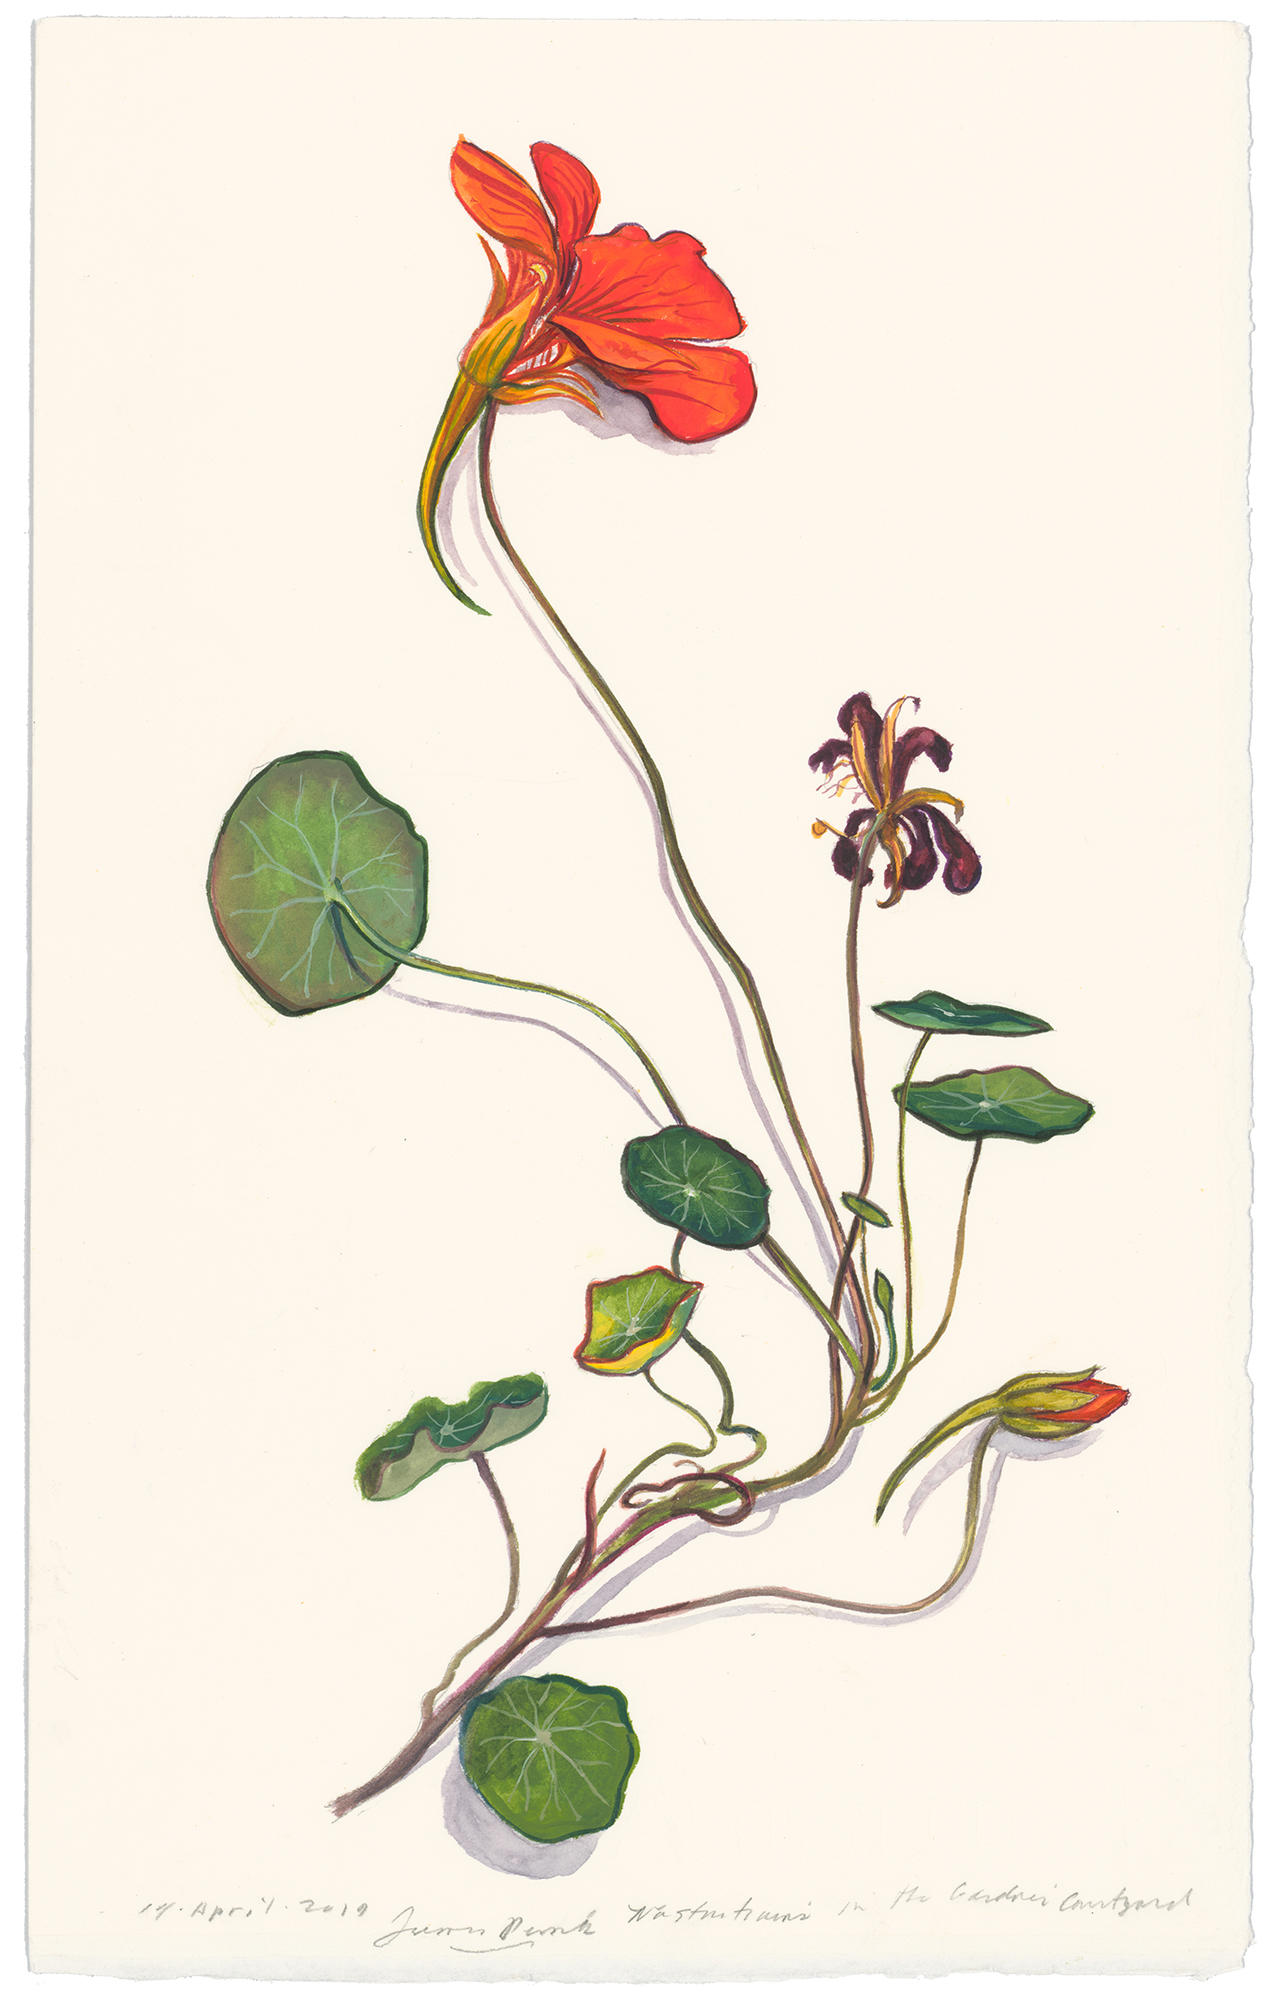 A watercolor painting of a single nasturtium